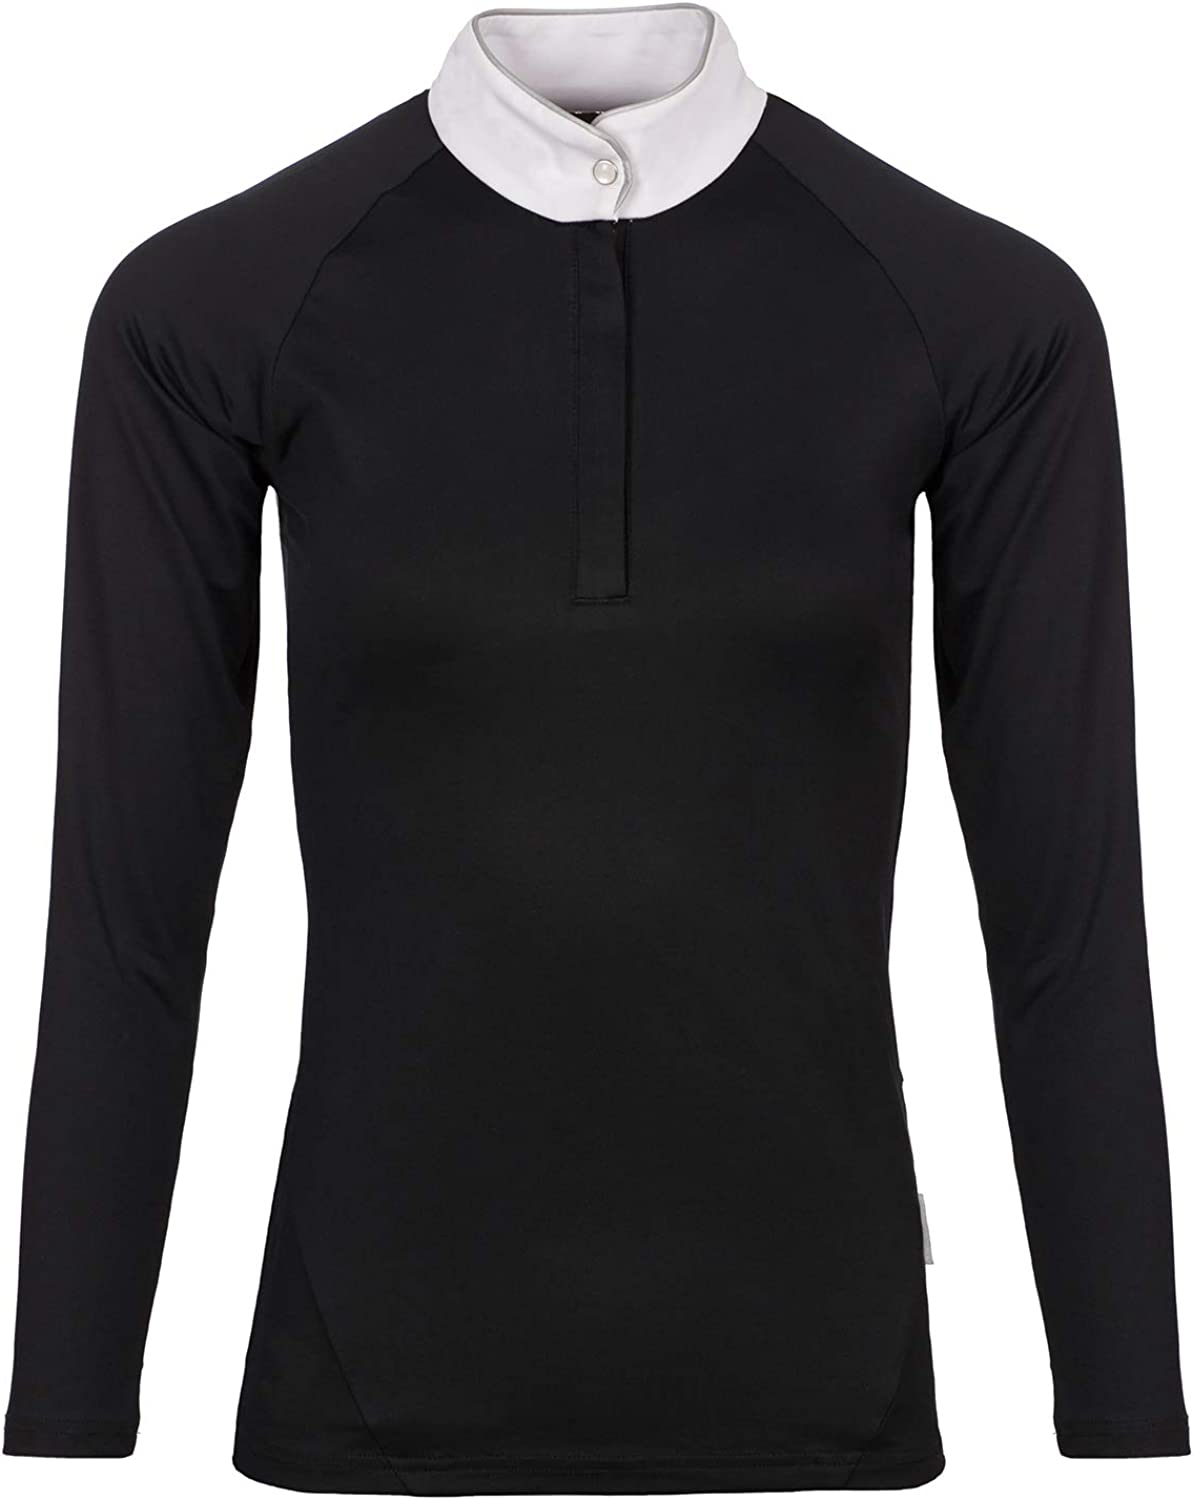 Horseware Ireland Selling and selling Sara Competition Super intense SALE Shirt L X-Small S Black